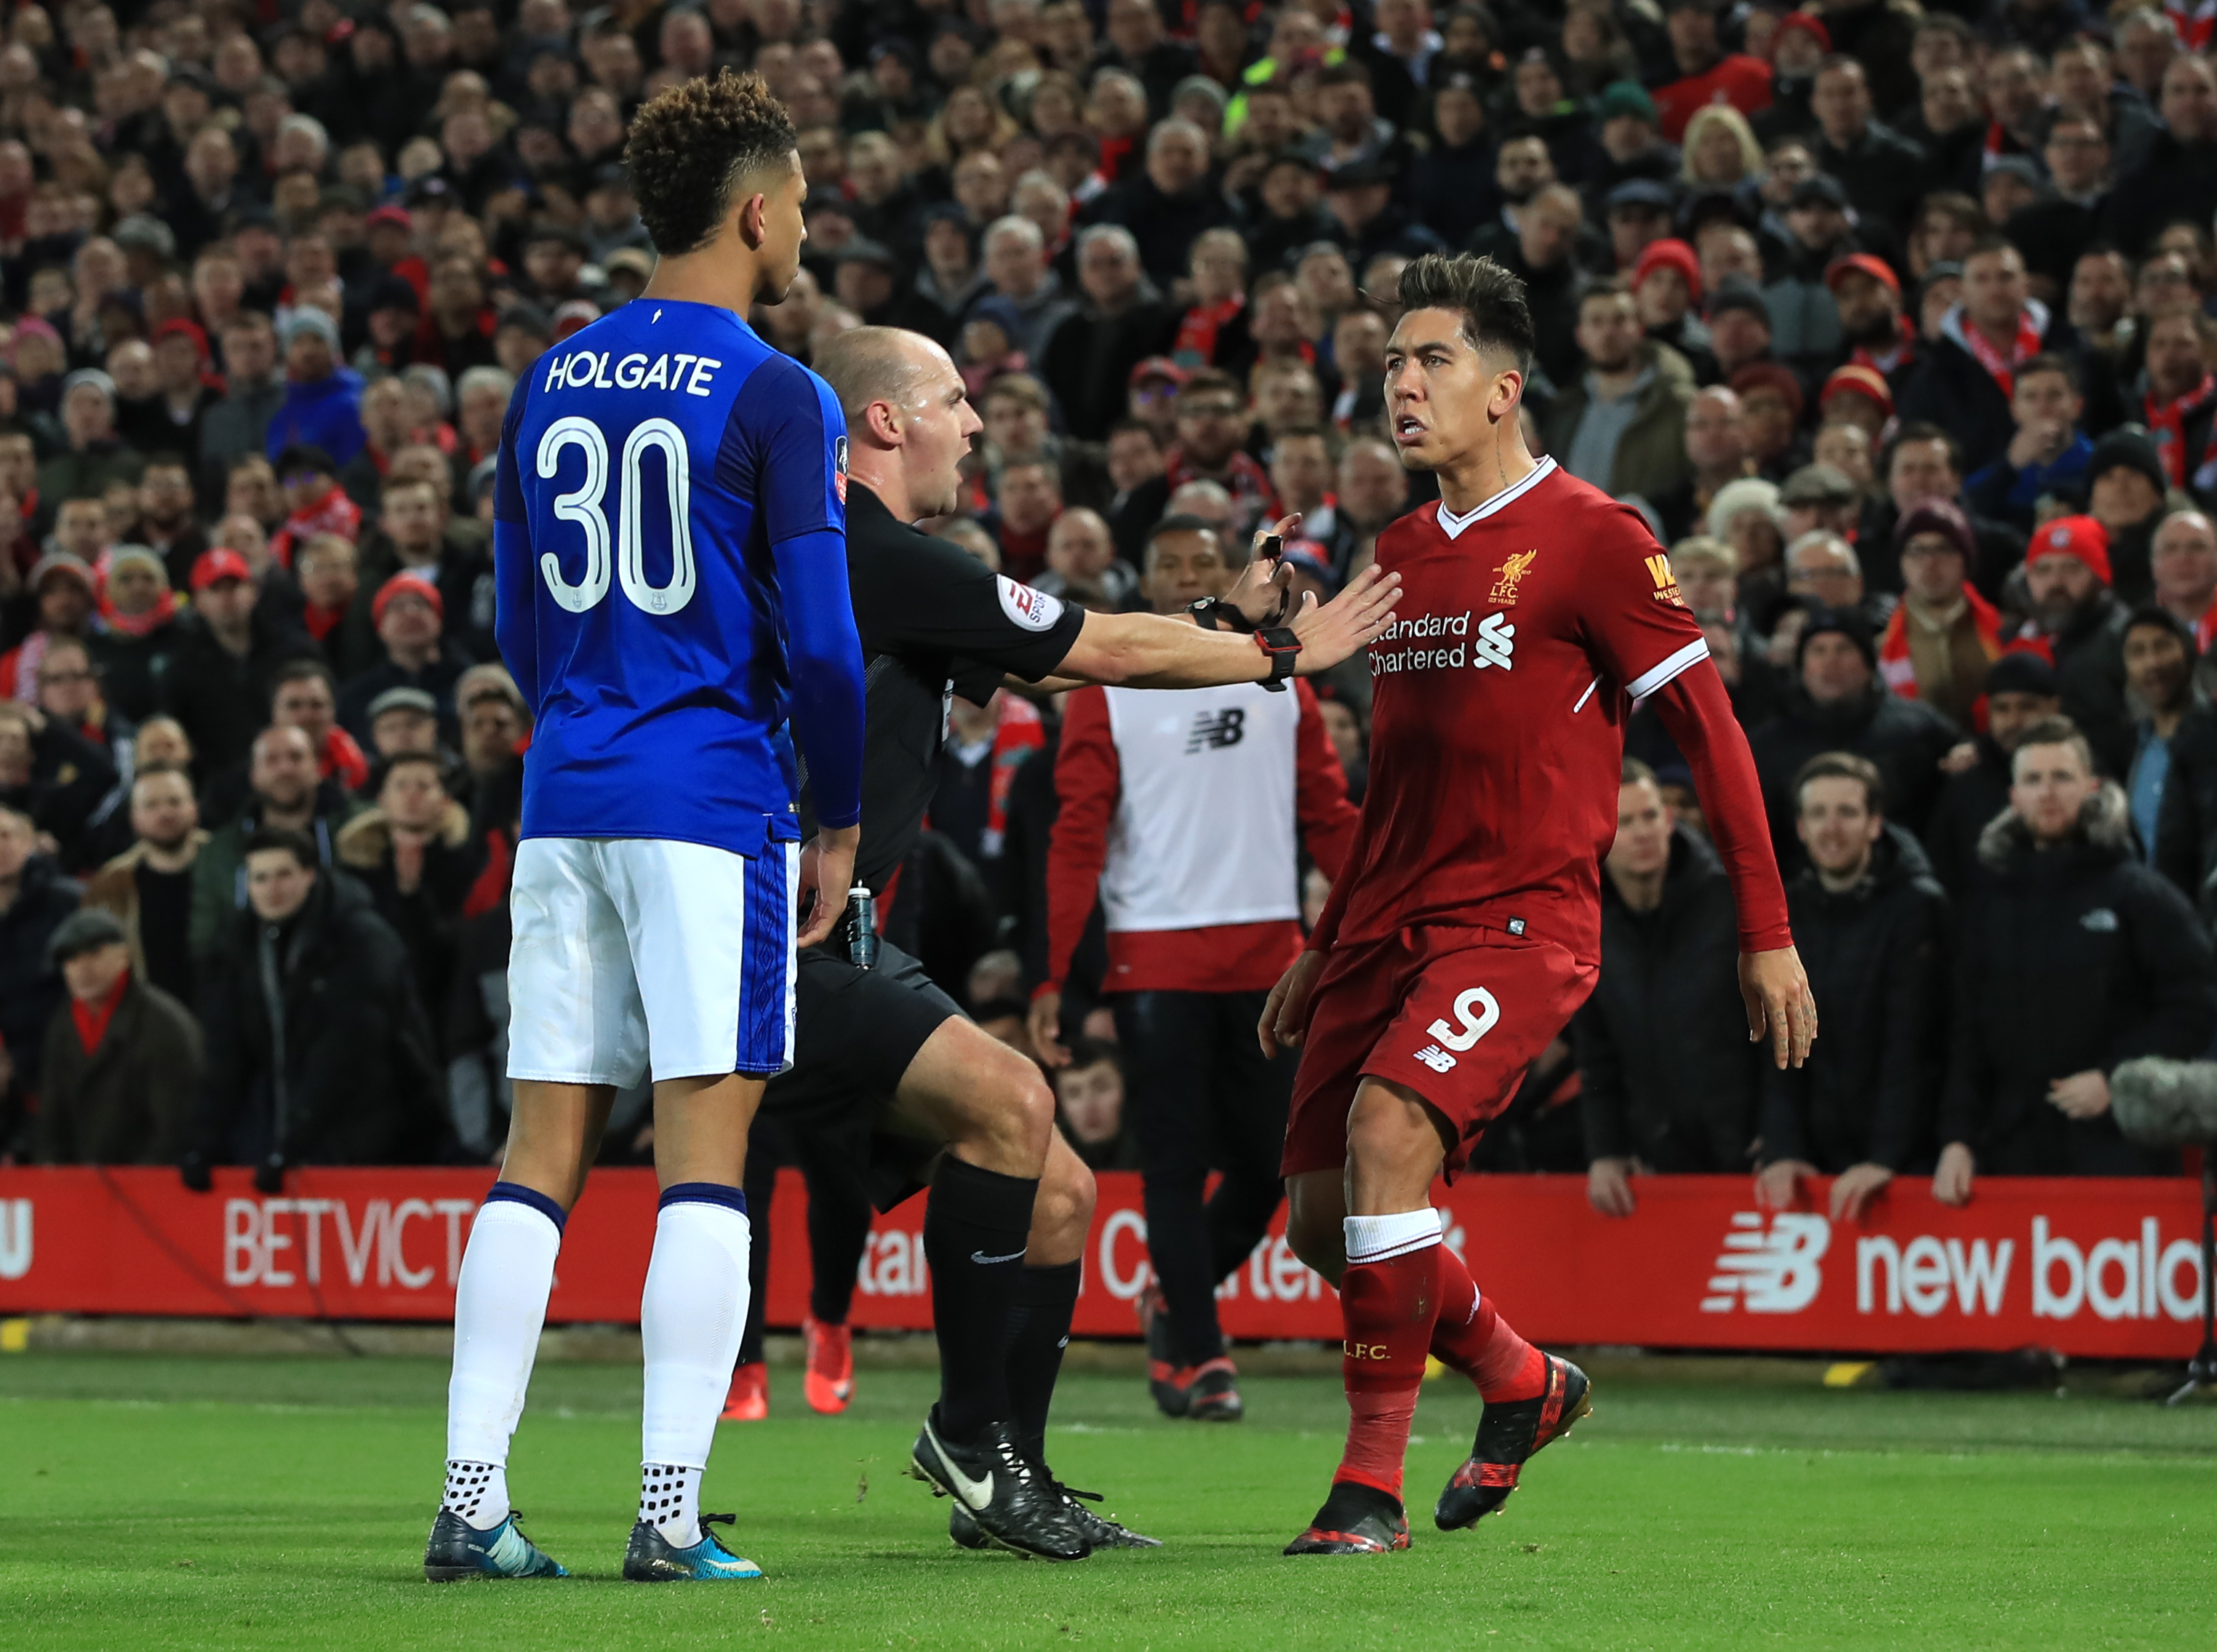 Watch: FA To Investigate Holgate's Racism Allegation Against Firmino